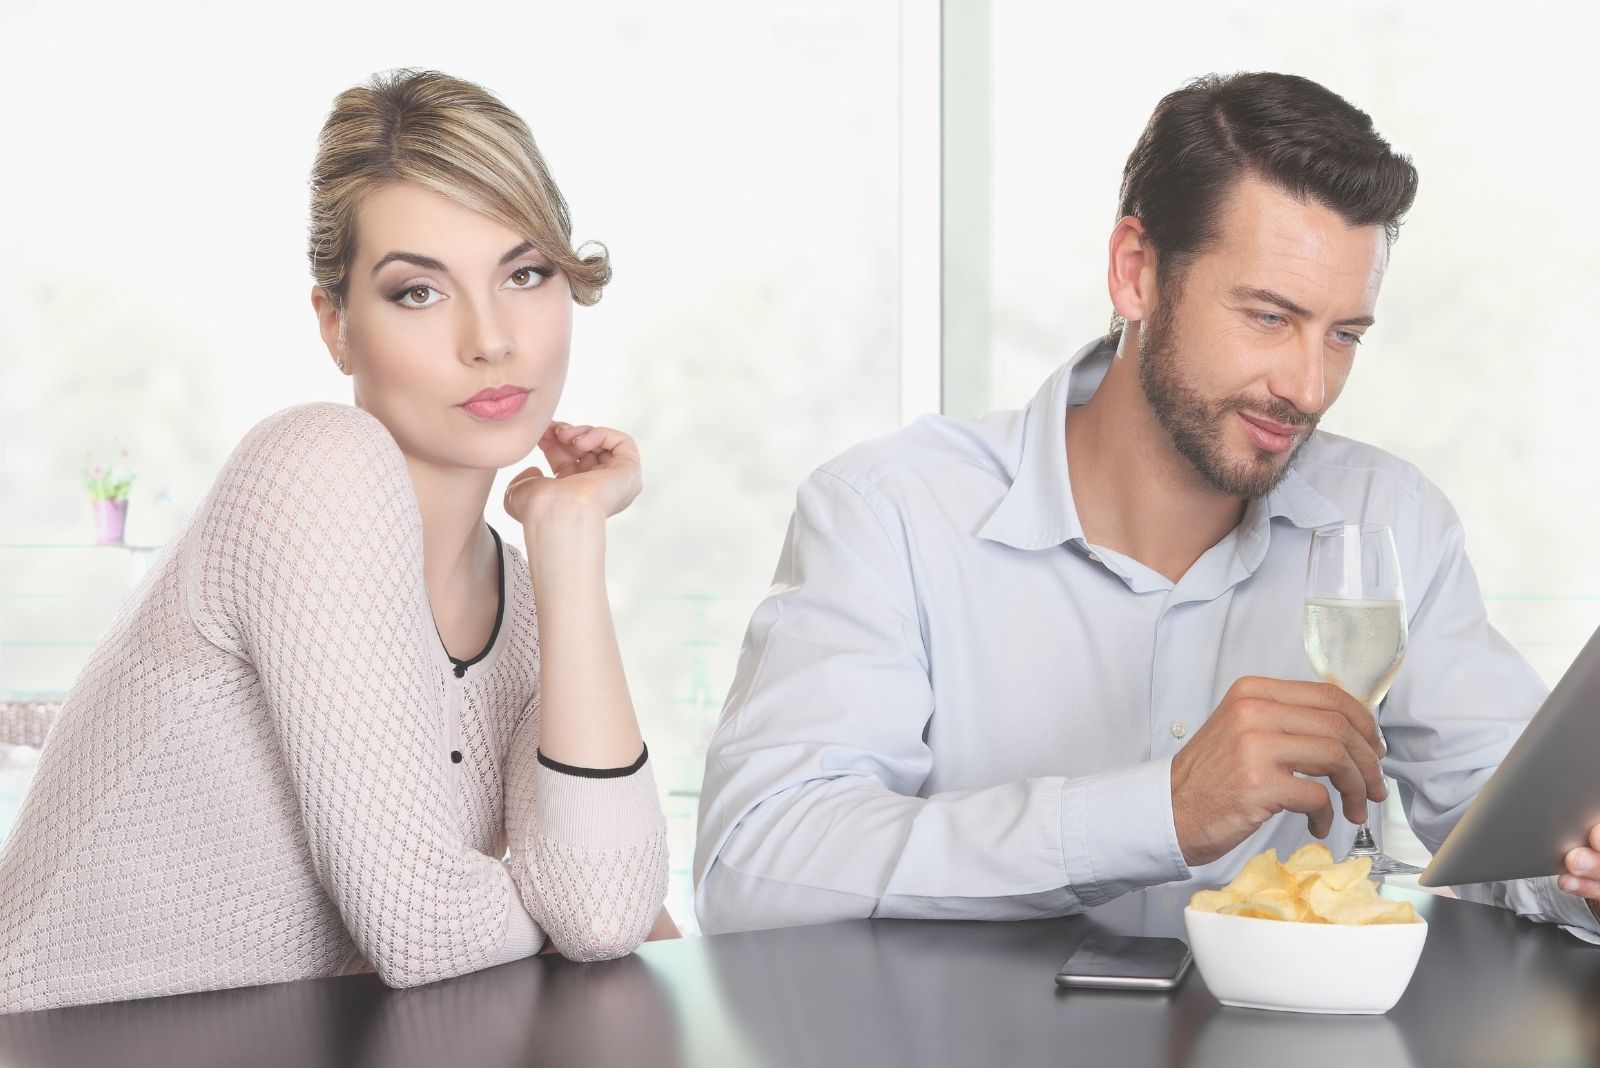 bored woman sitting beside an indifferent person busy with his tablet while inside a cafe